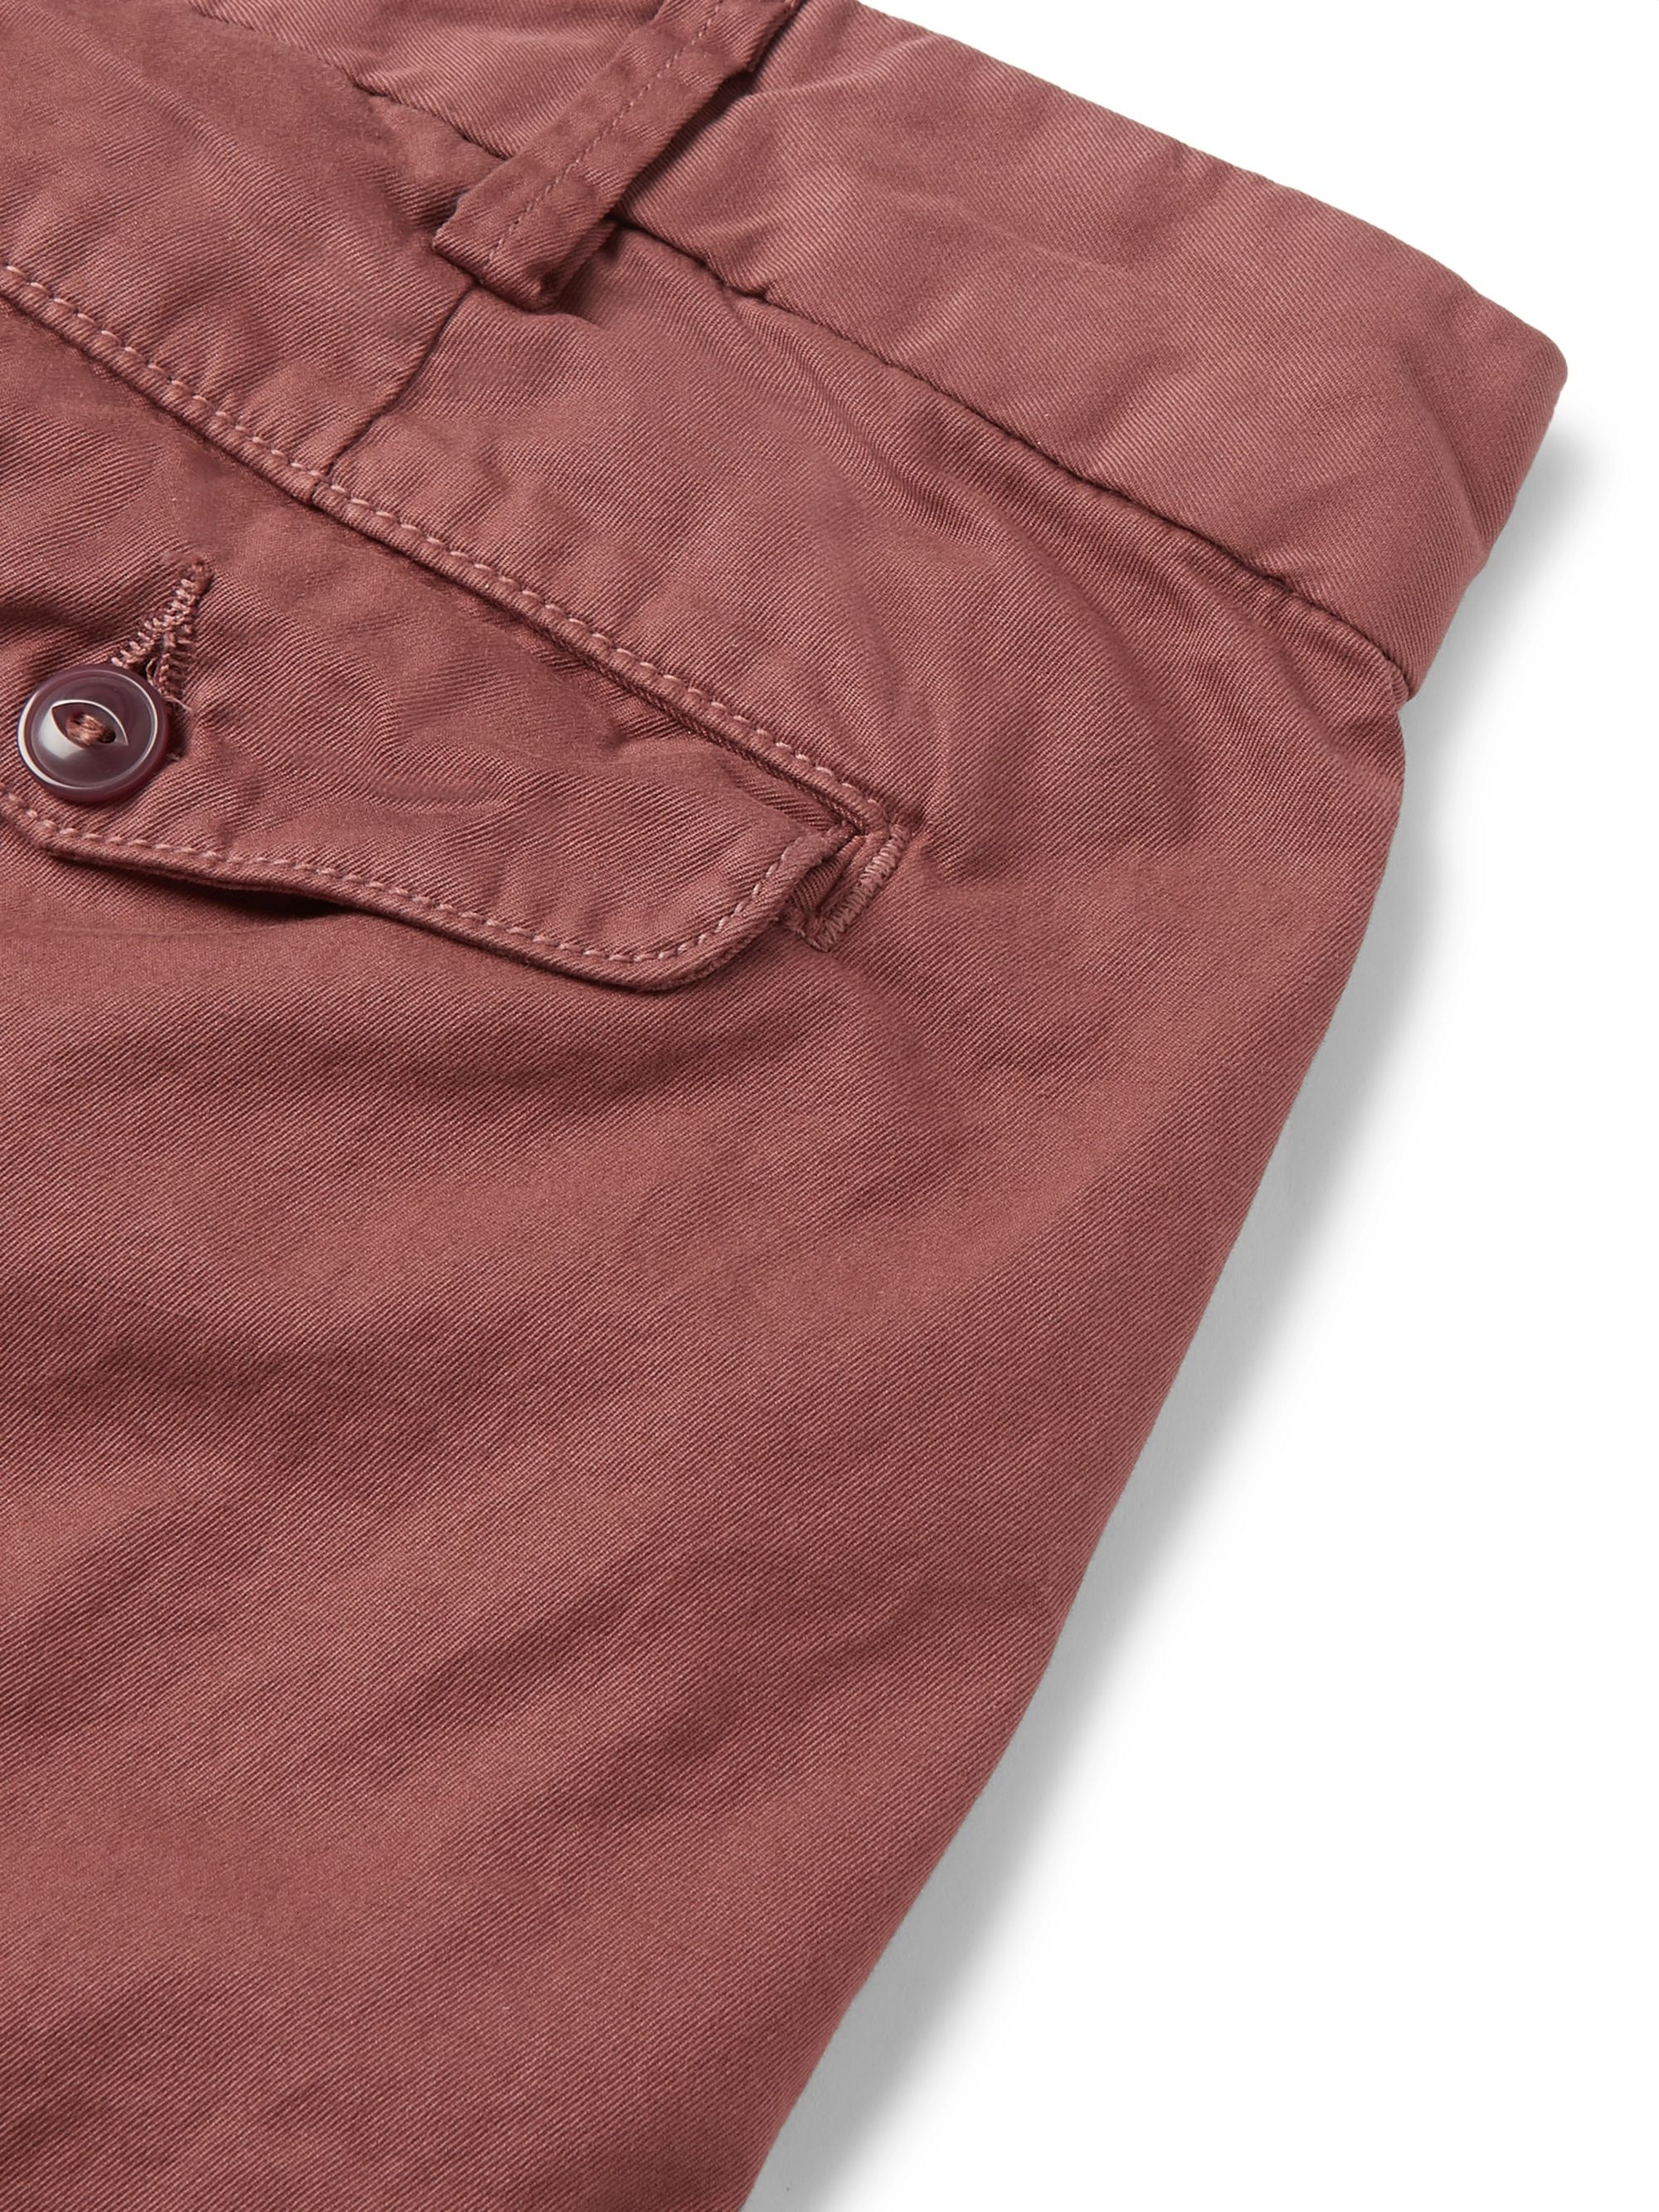 Save Khaki United Cotton-Twill Bermuda Shorts